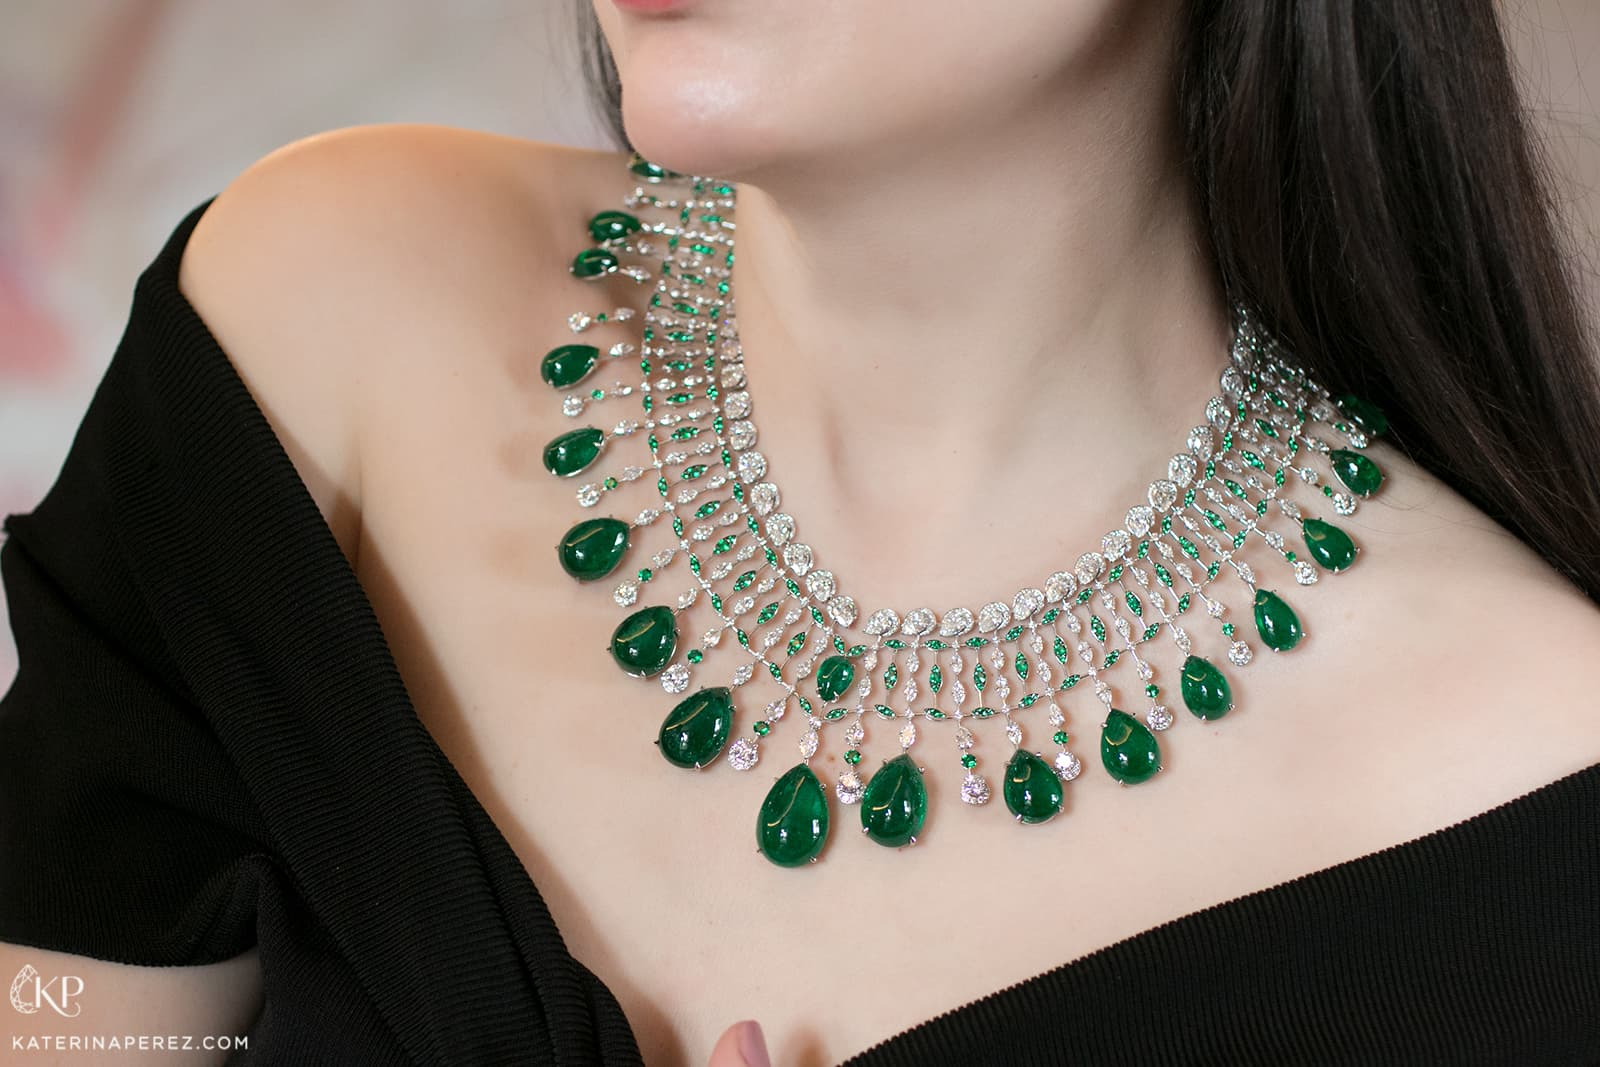 Chopard Red Carpet 2019 collection necklace with pear cut cabochon emeralds, emeralds and diamonds